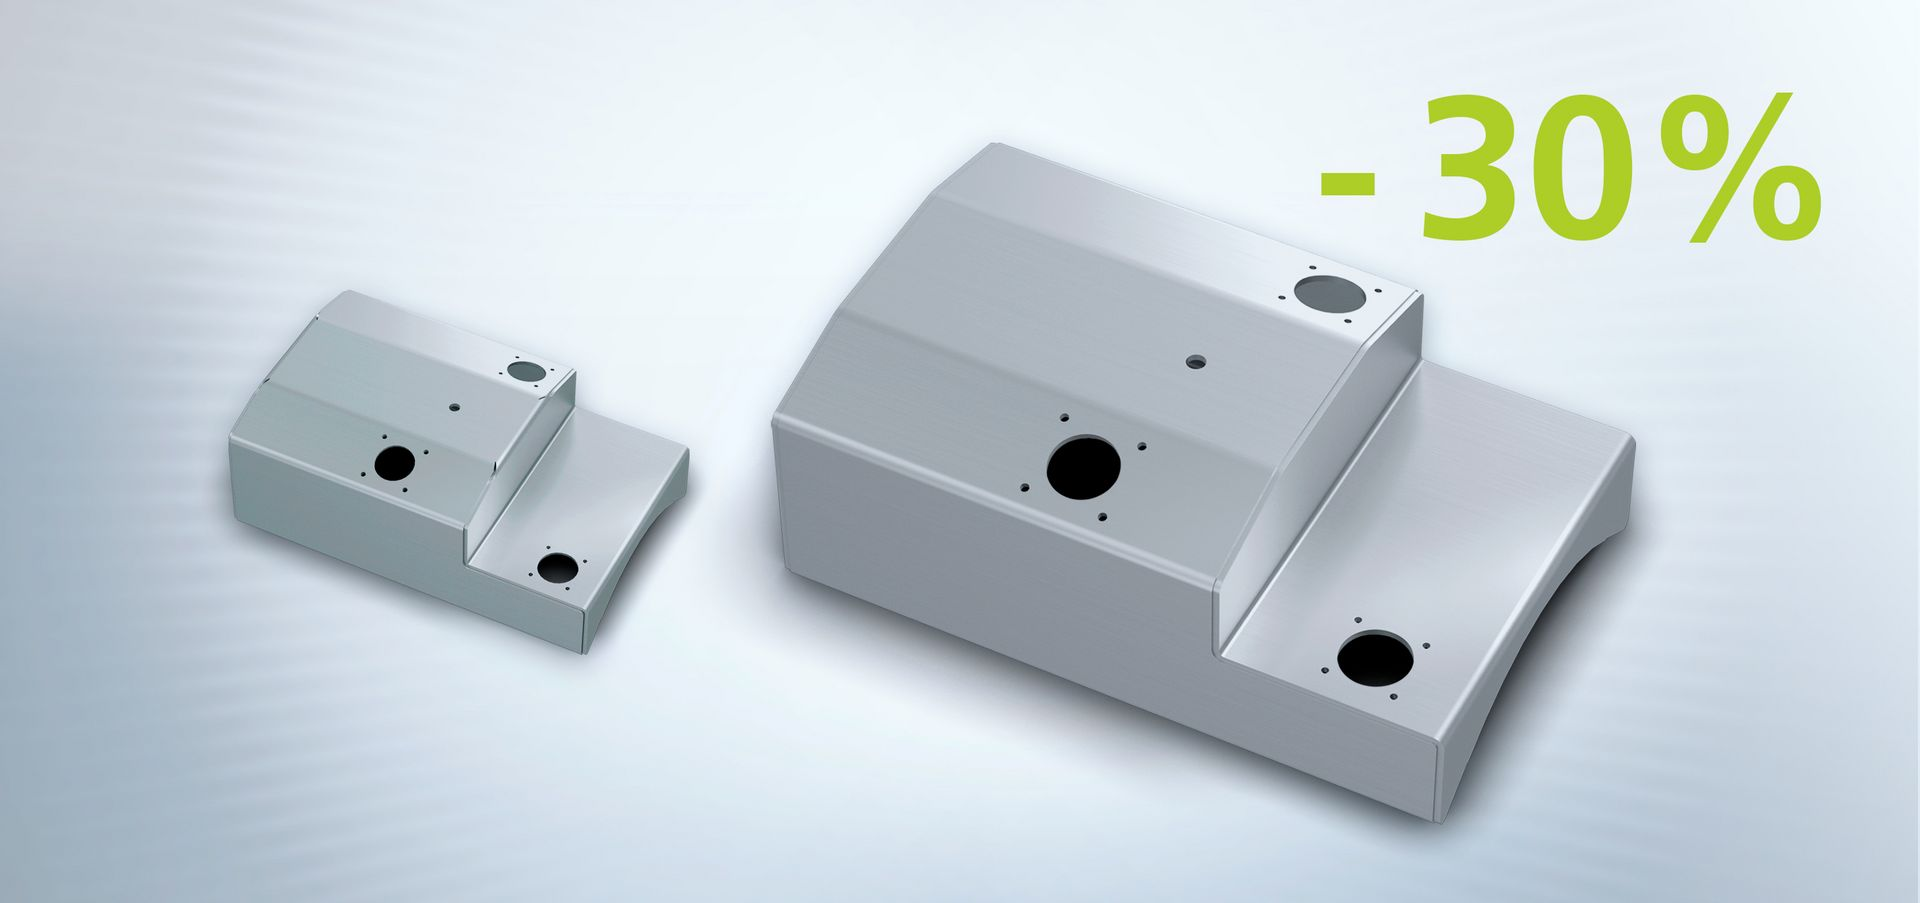 Part optimisation, laser welding part design, example